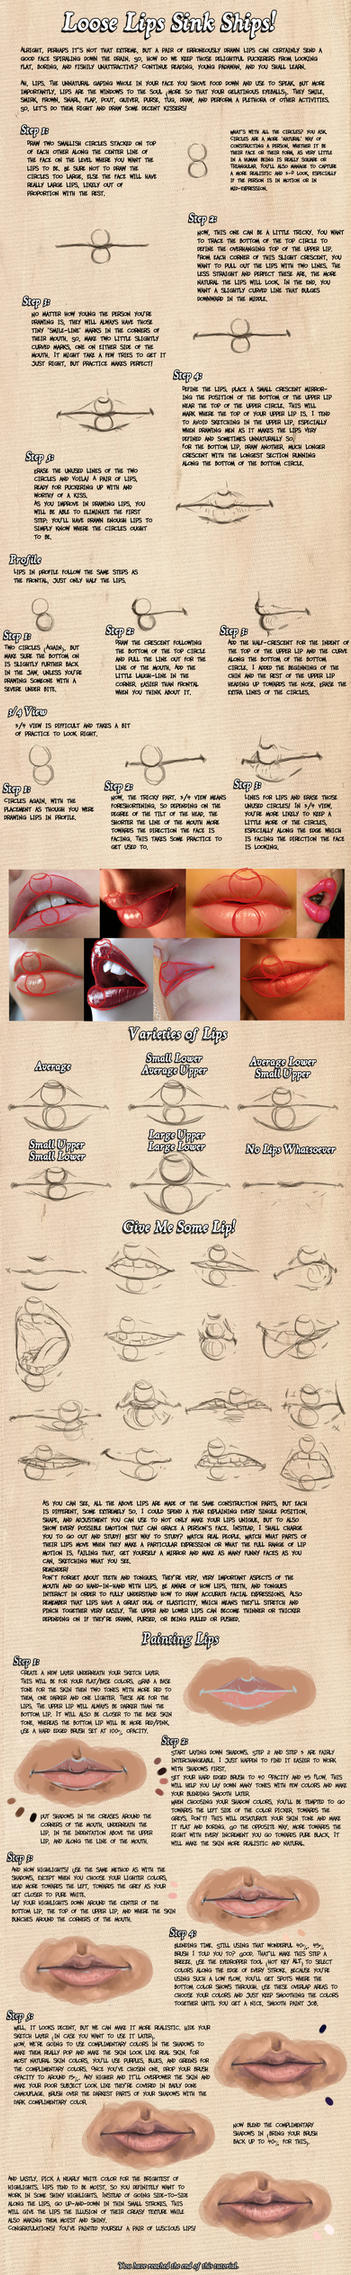 Everything Concerning Lips by Mytherea